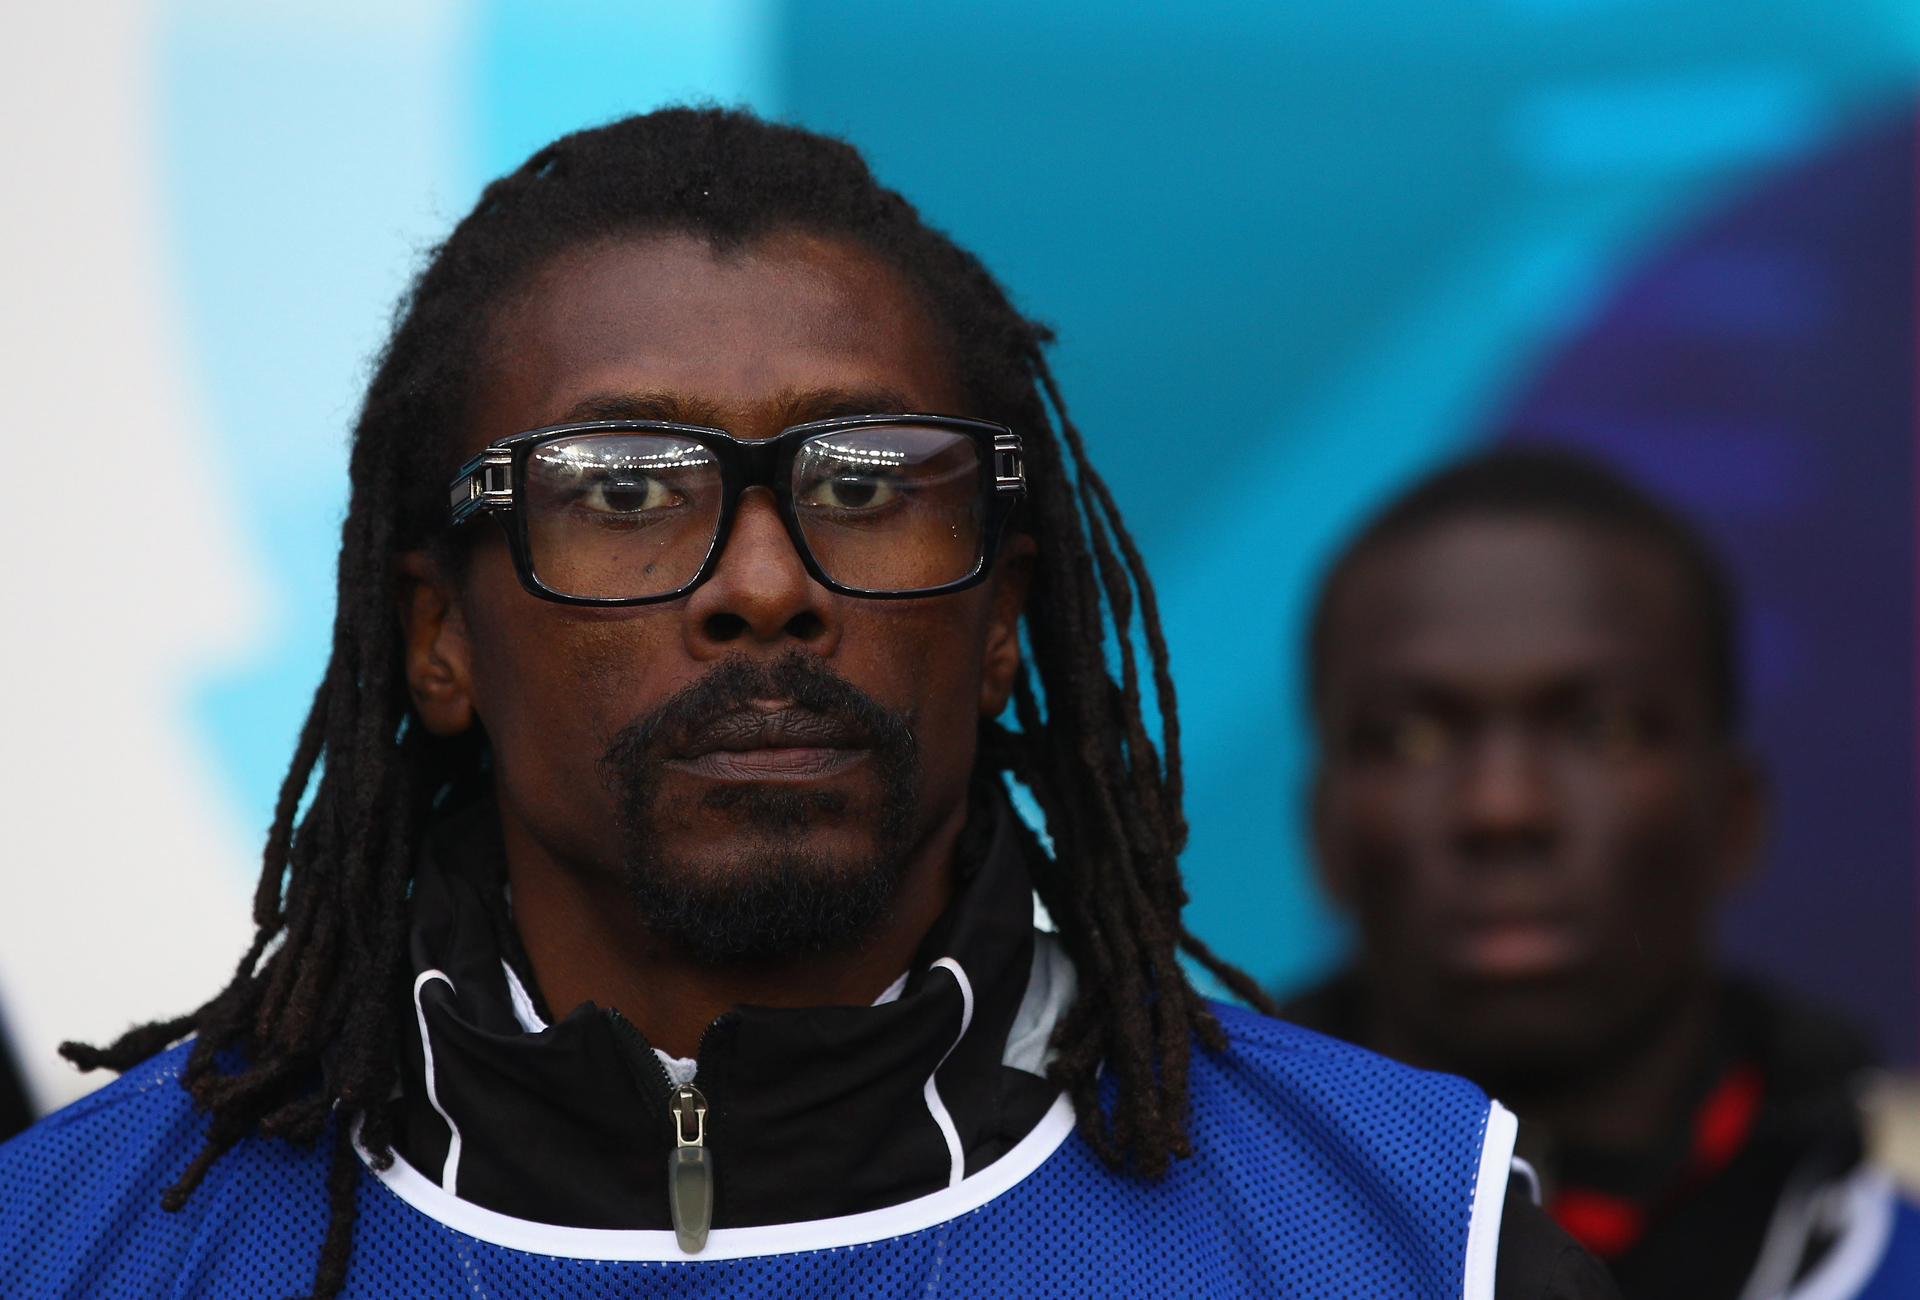 Senegal World Cup: How the Group H teams fared